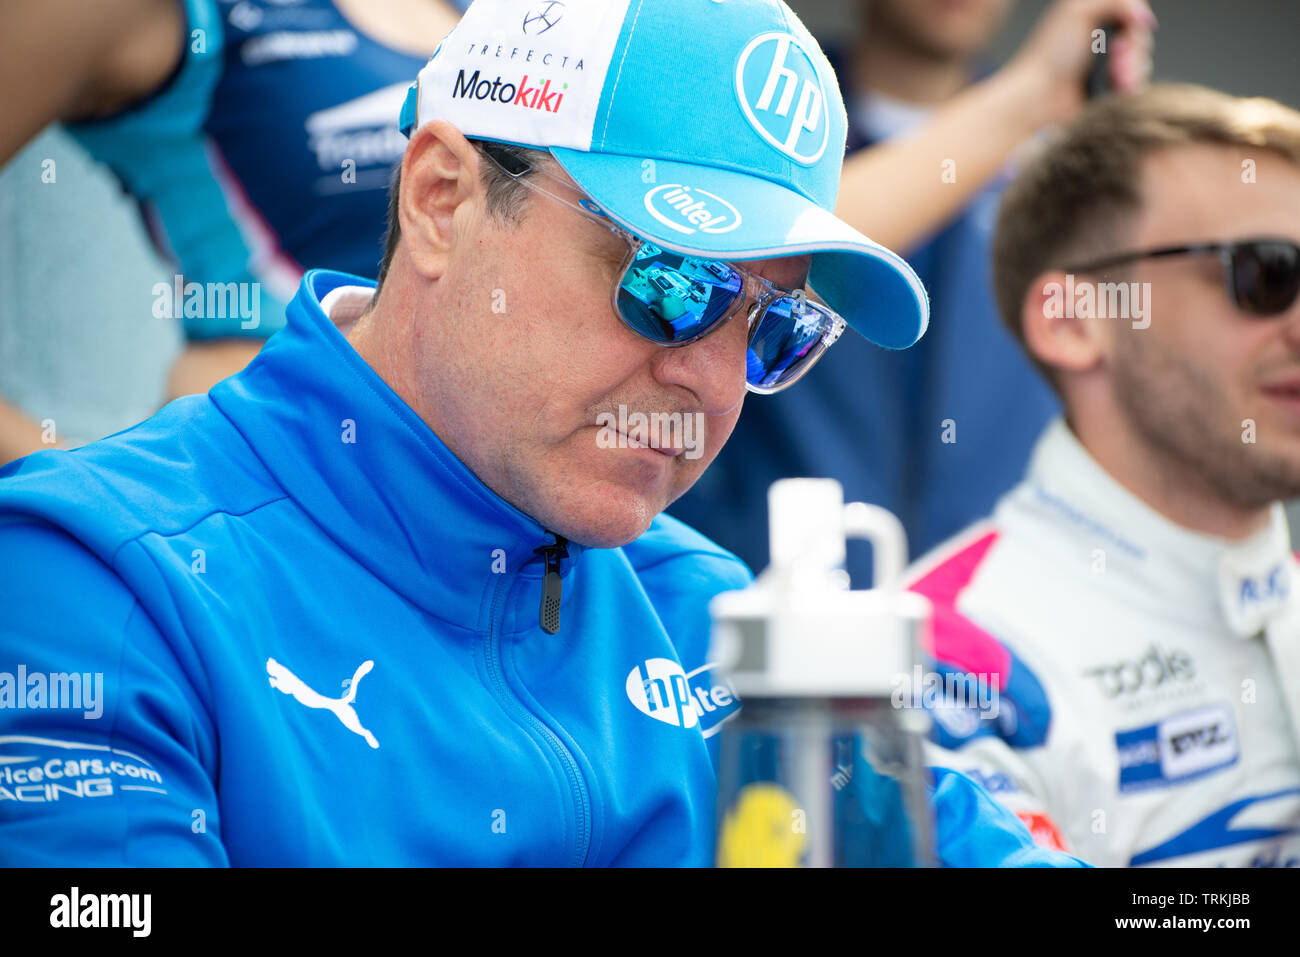 Mark Blundell BTCC Racing Driver at Thruxton During the Kwikfit British Touring Car Championship Weekend of May 18th and 19th 2019 - Stock Image